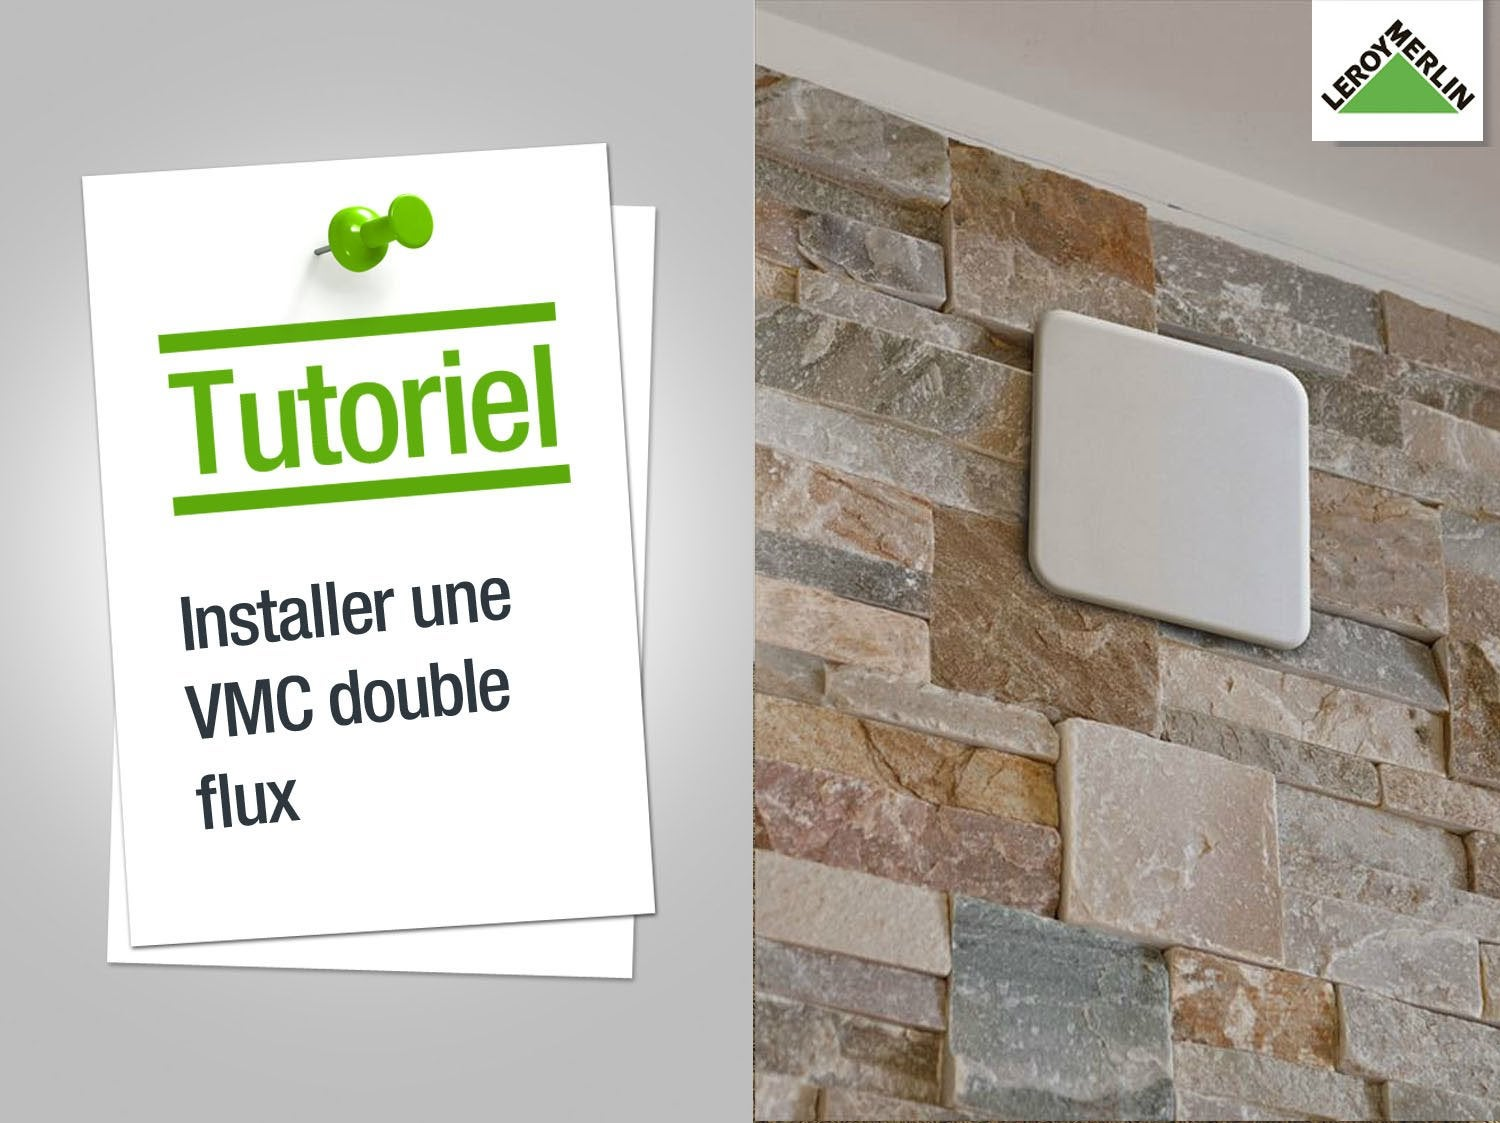 installer vmc double flux dans maison ancienne affordable rnovation duune maison ancienne tous. Black Bedroom Furniture Sets. Home Design Ideas